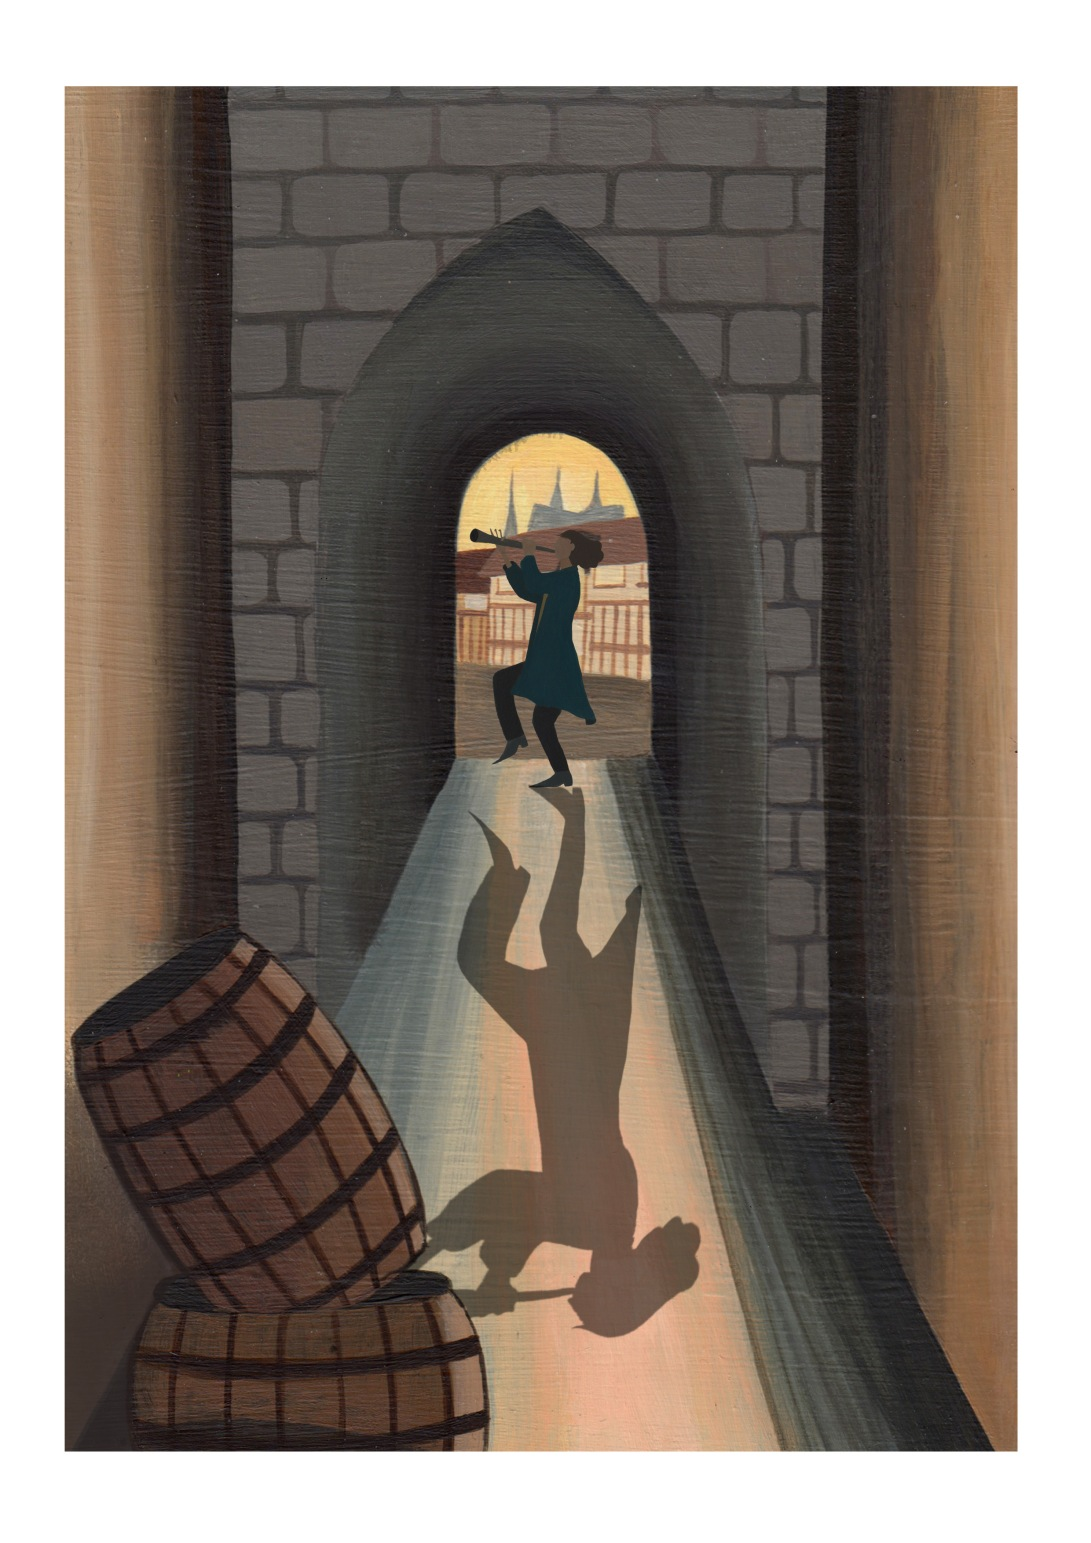 pied piper second image with border finished